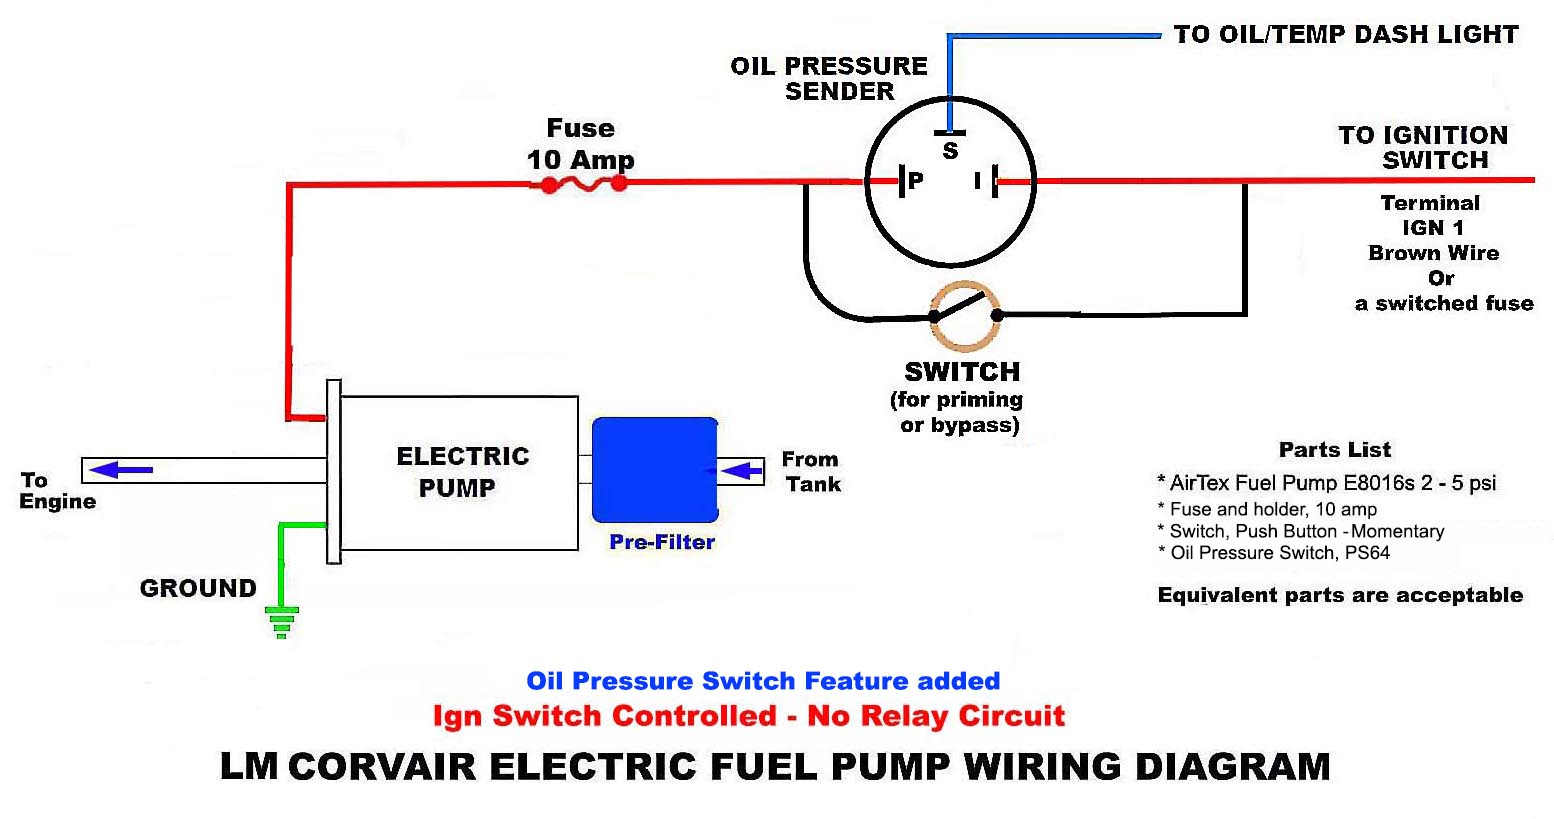 First Post Oil Pressure Safety Switch Question Airtex Fuel Pump Wiring Diagram Attachments